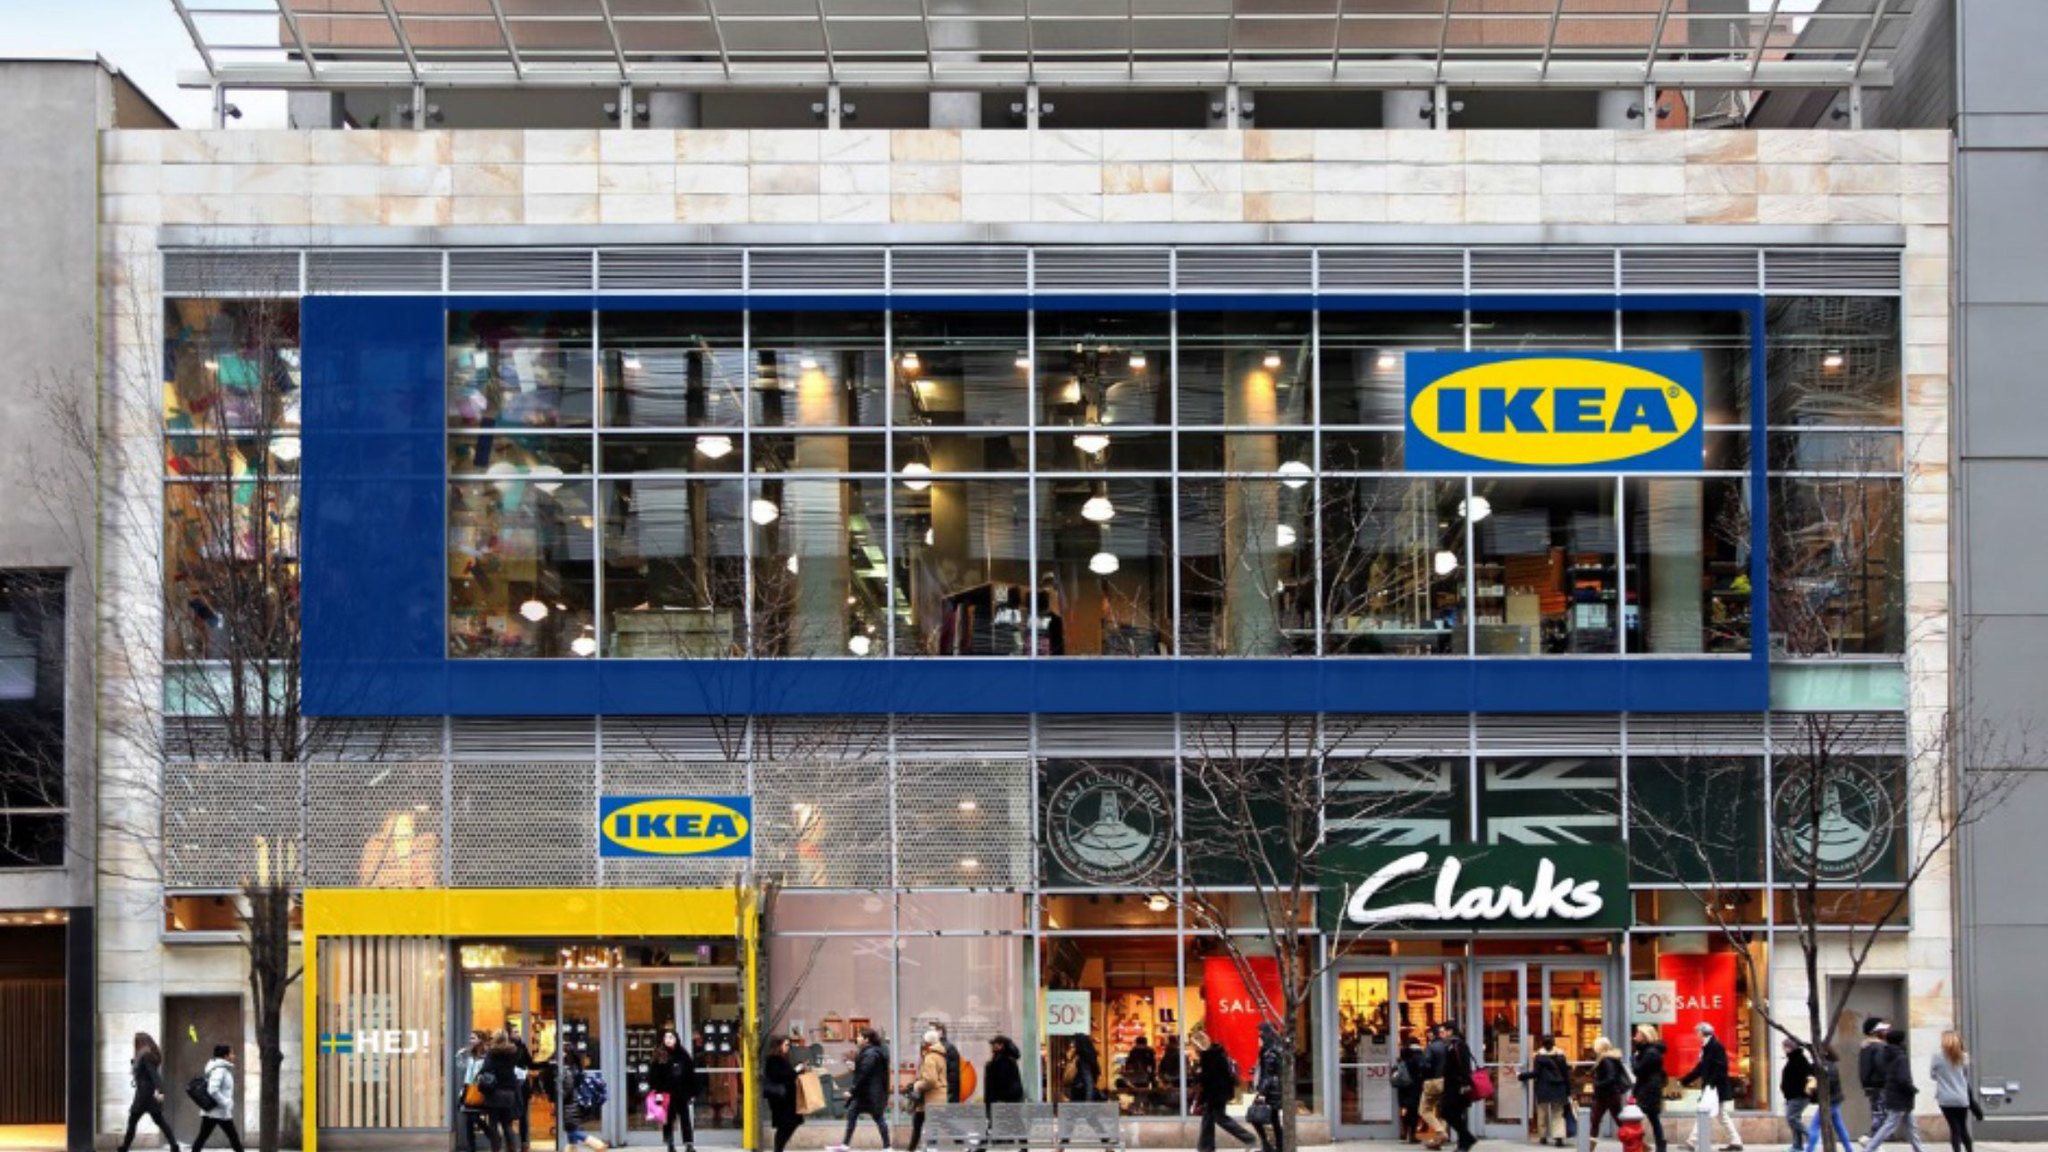 Ikea to open Manhattan location - but you wont be able to get the signature Swedish meatballs